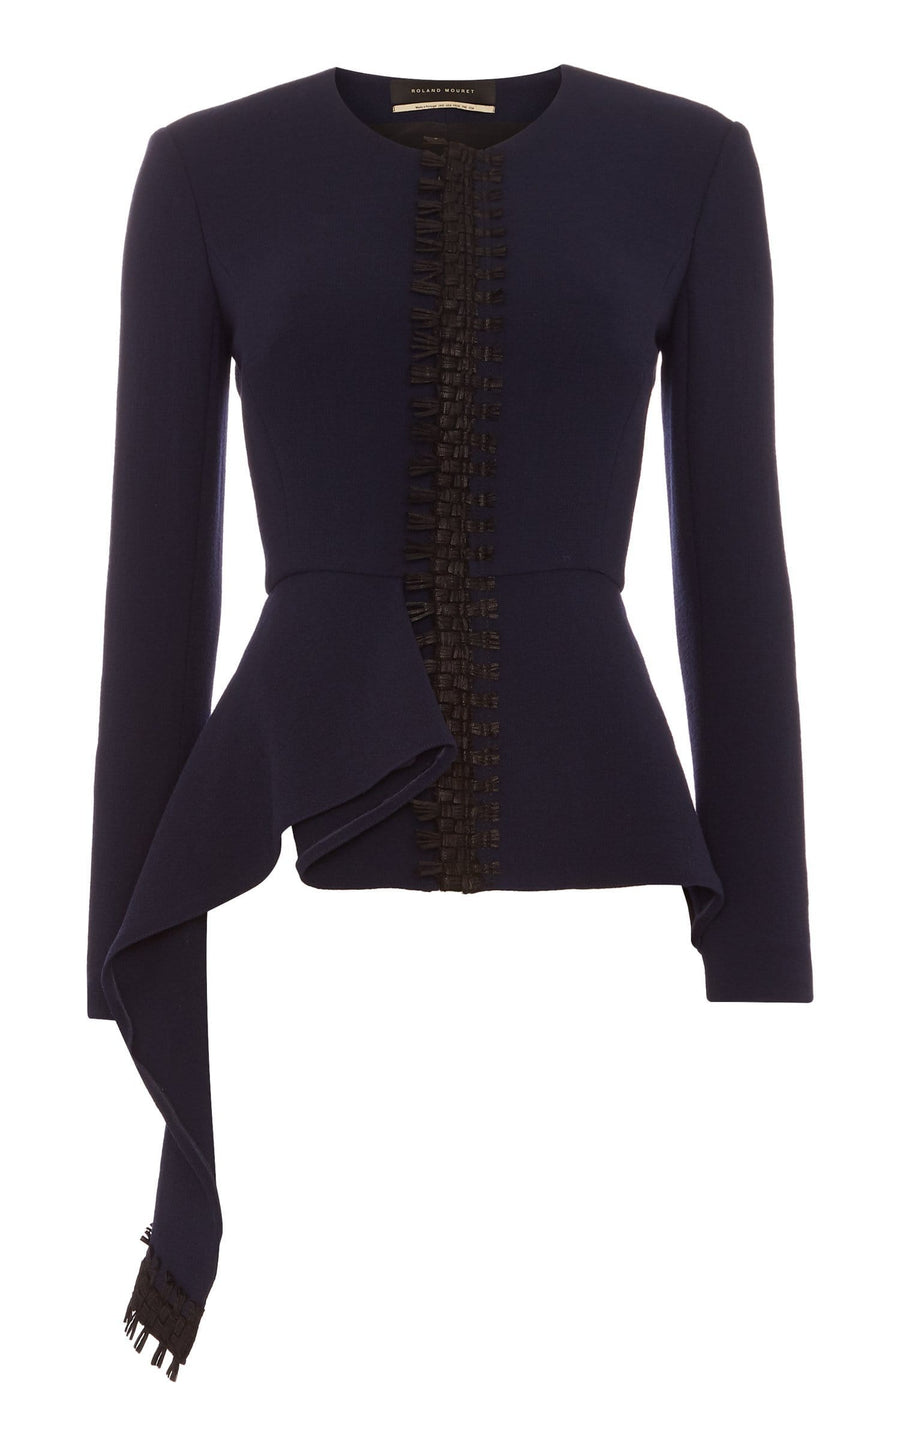 Greenwood Jacket In Navy/Black from Roland Mouret